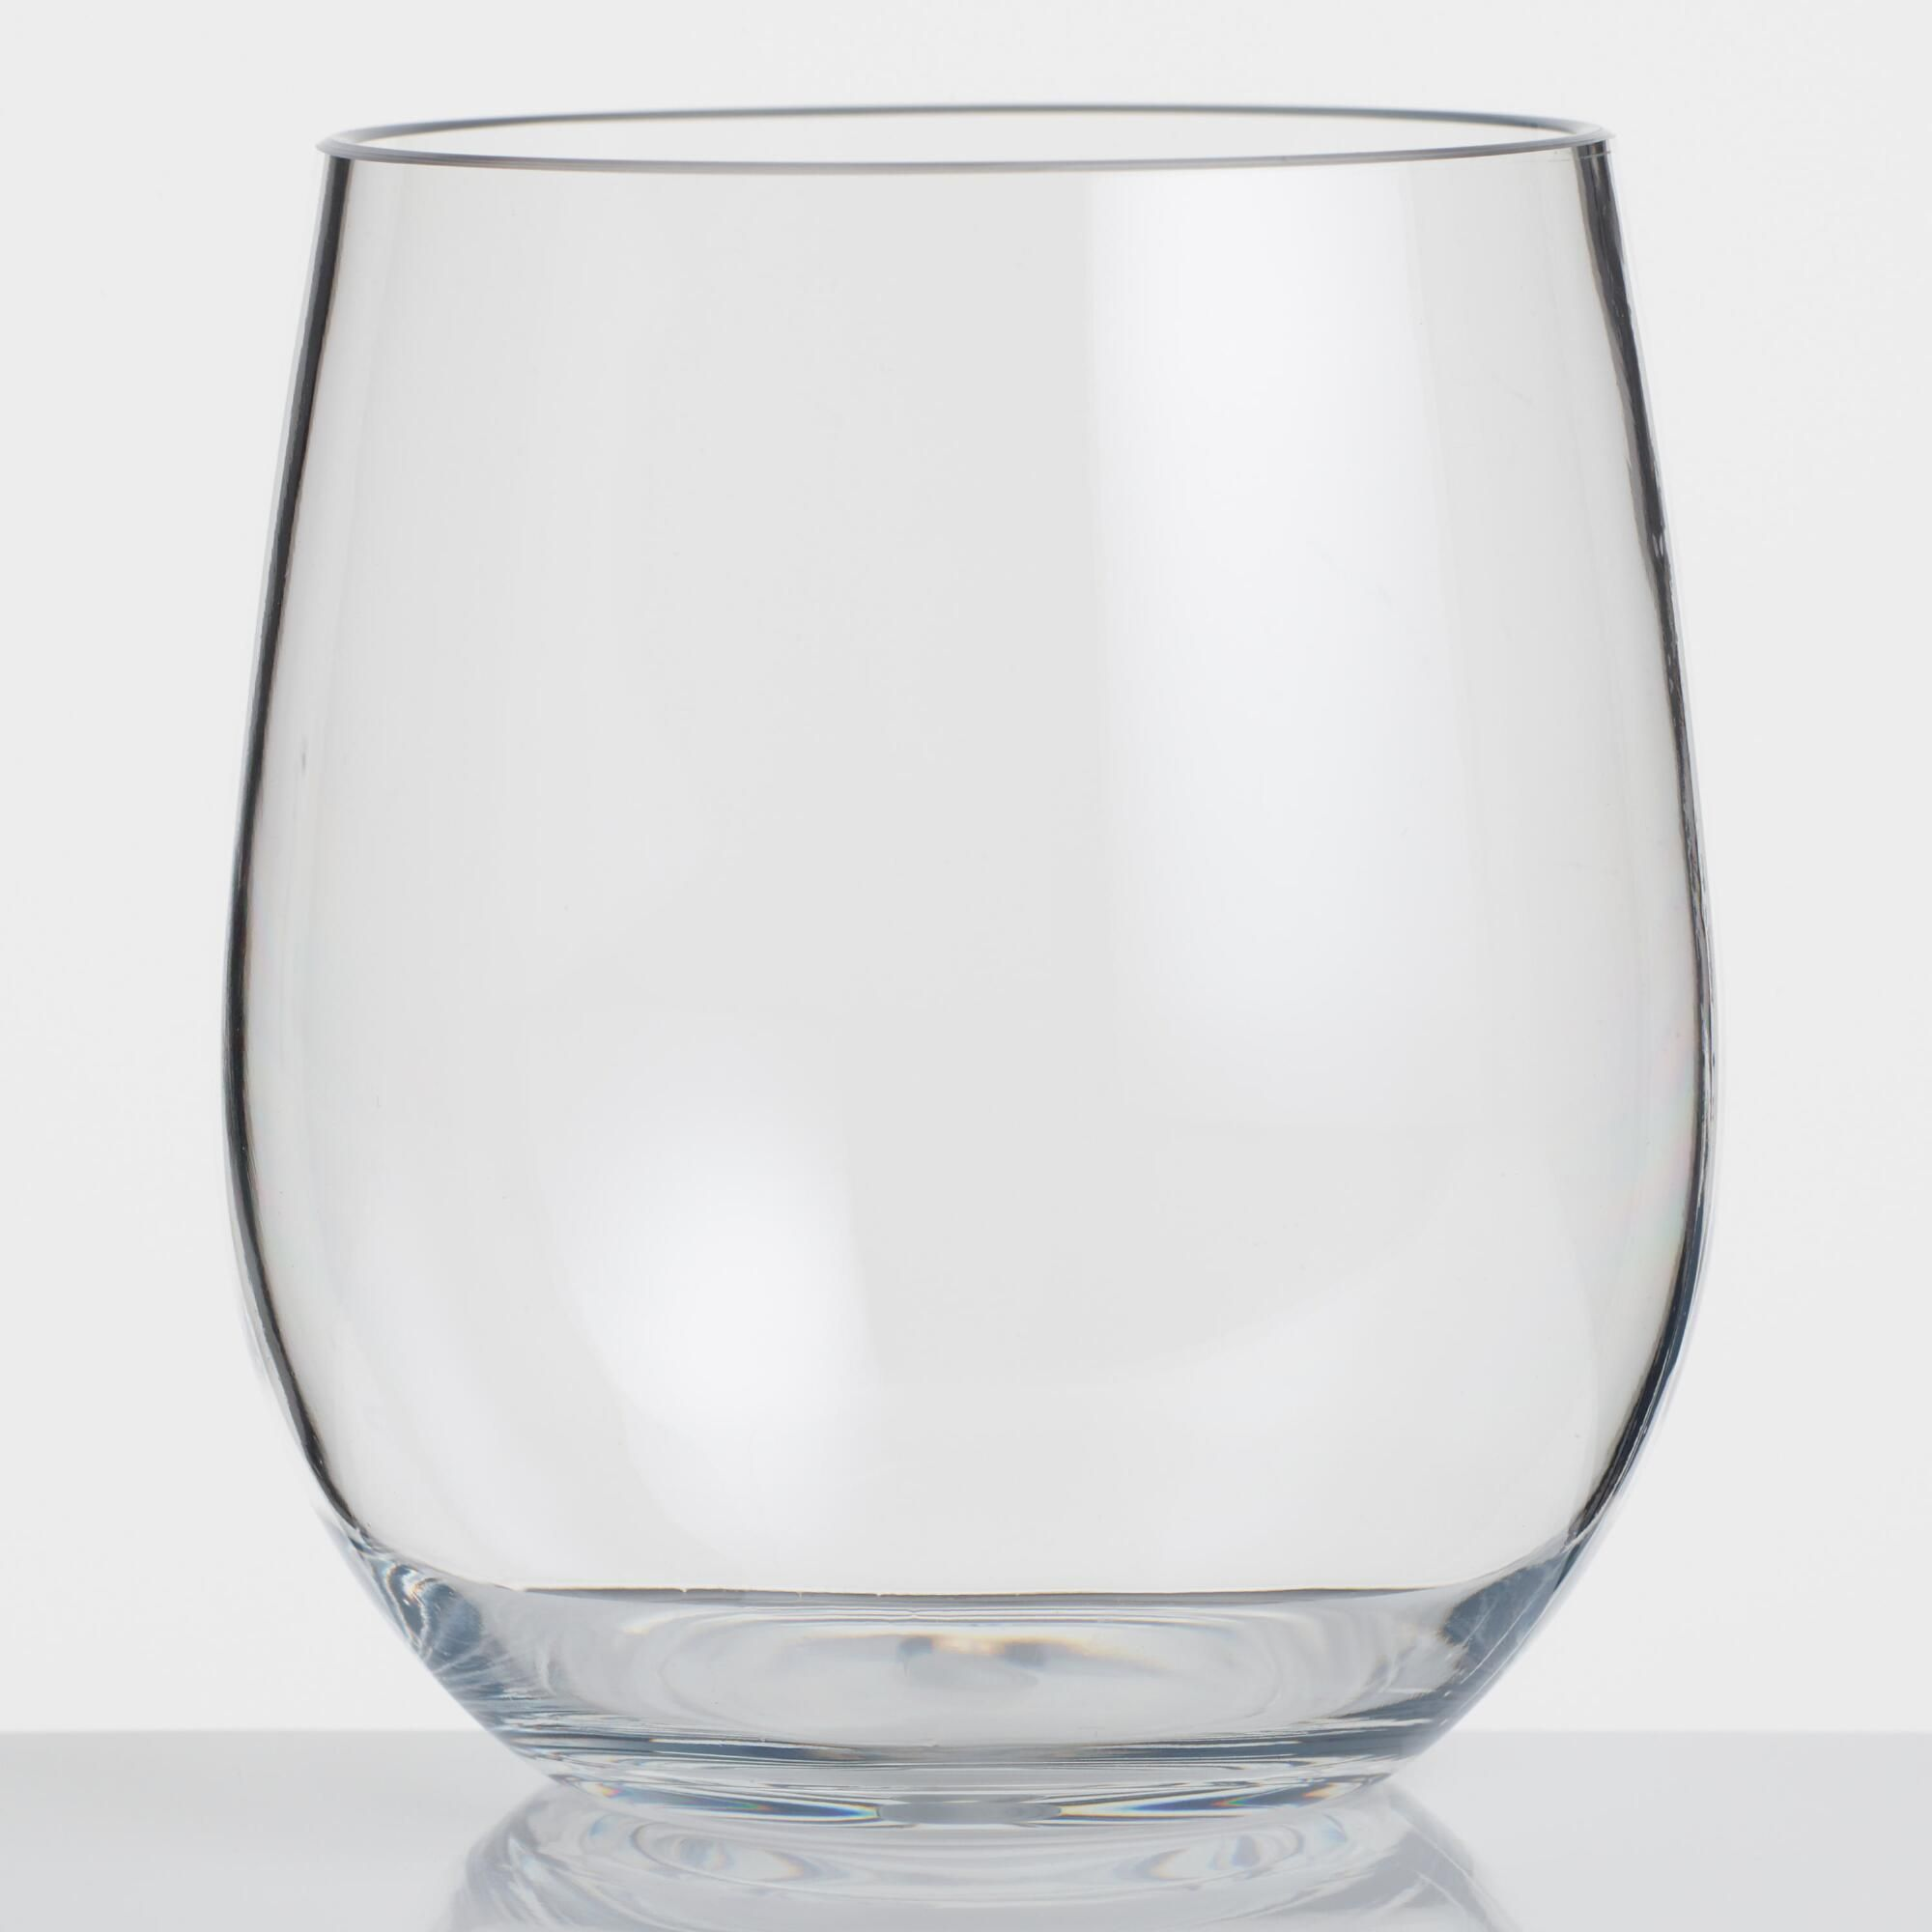 b6c406df8e9 Acrylic Stemless Wine Glasses Set of 6 by World Market | Products ...